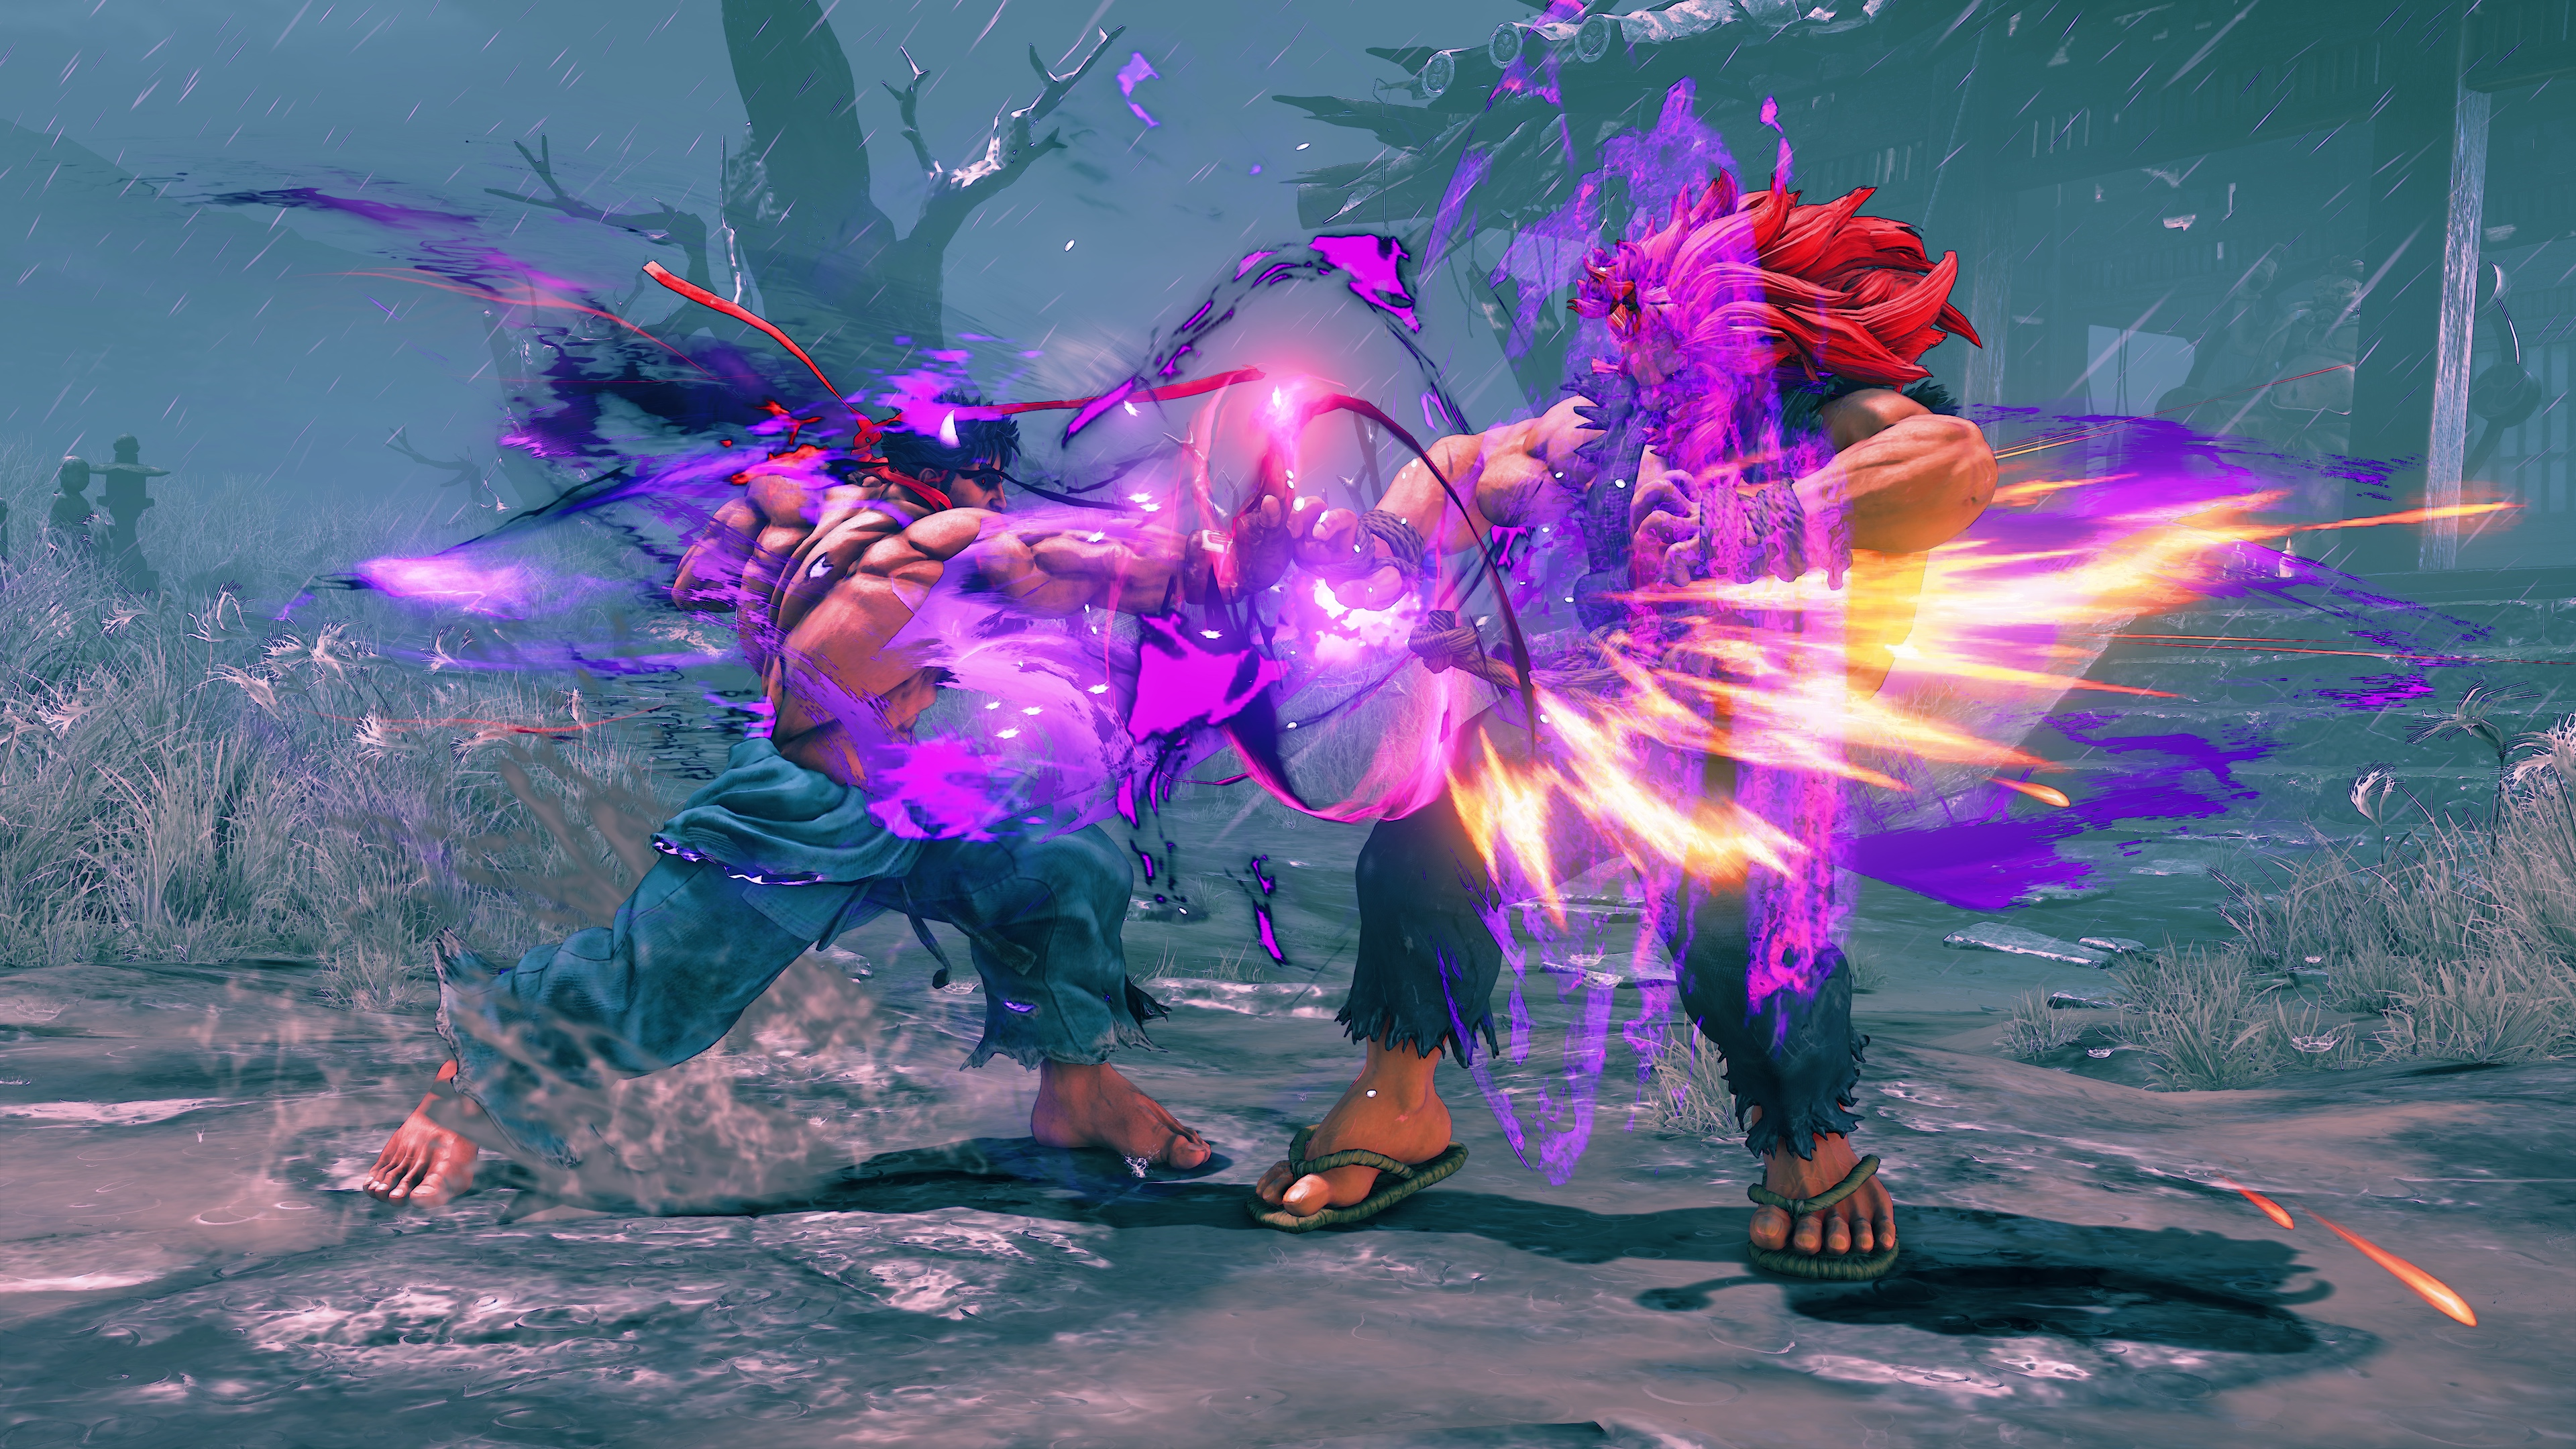 Street fighter 5 s first season 4 character kage - Raging demon symbol ...